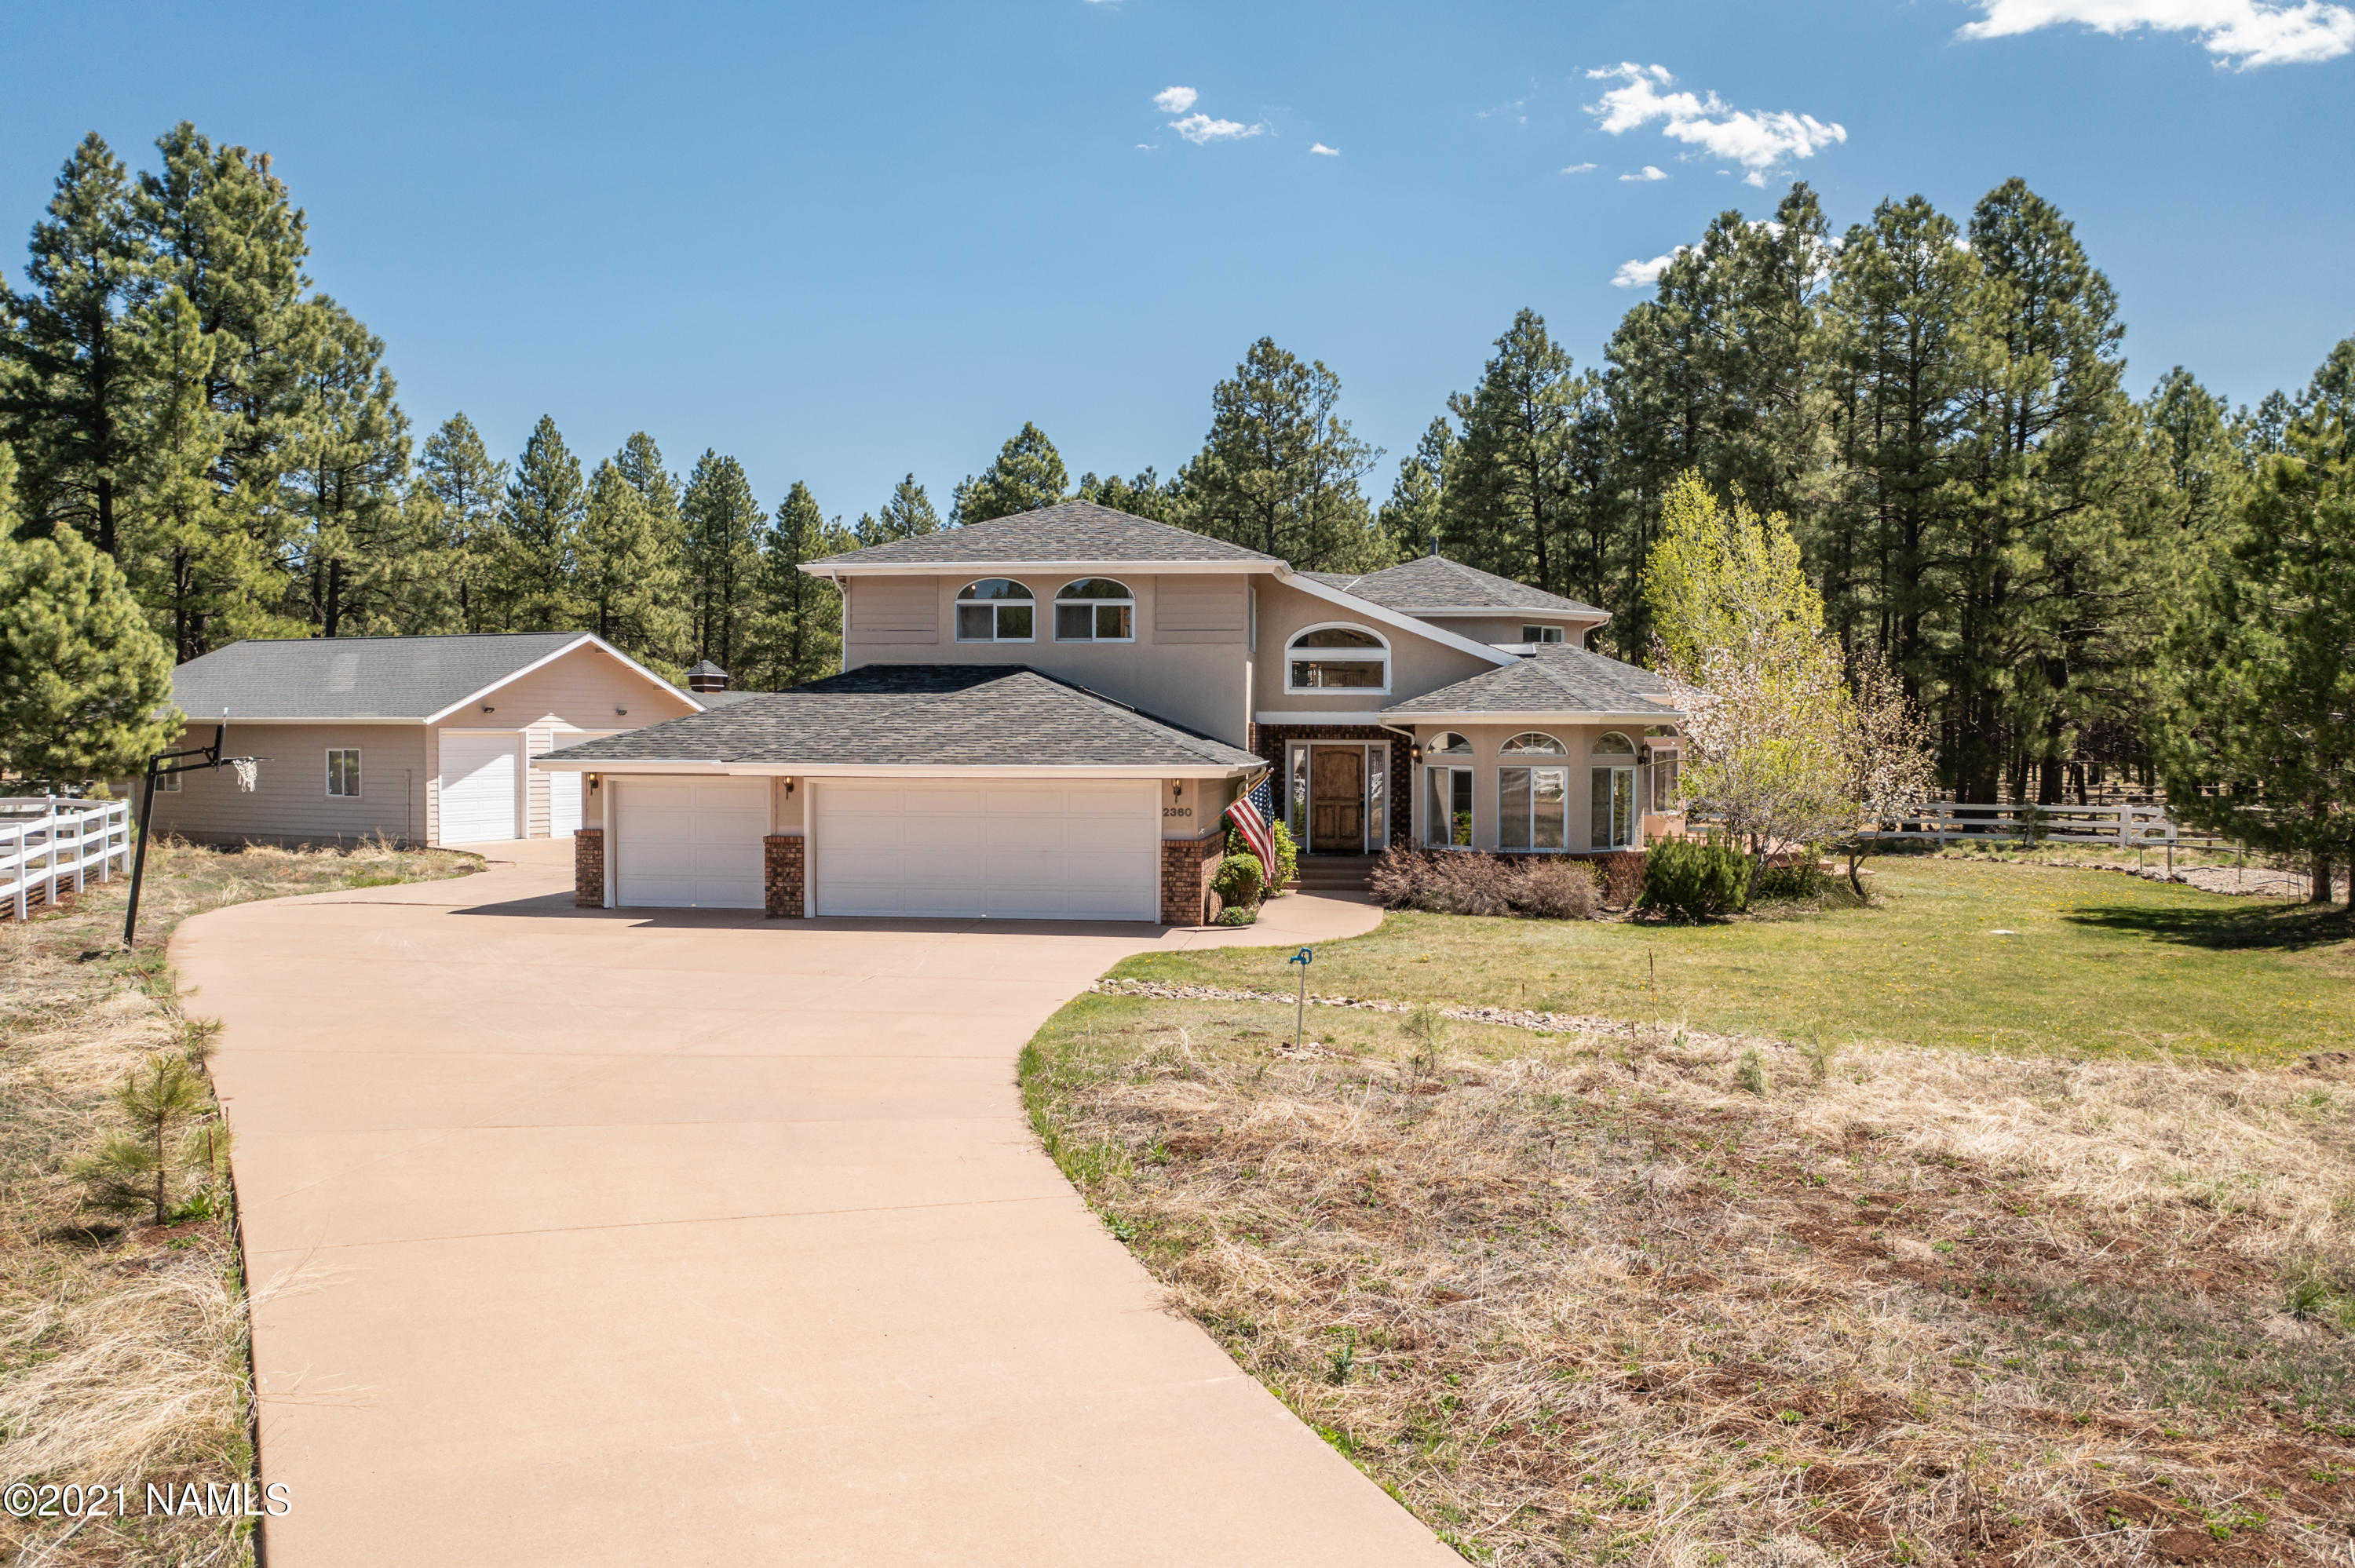 $2,100,000 - 6Br/4Ba -  for Sale in Flagstaff